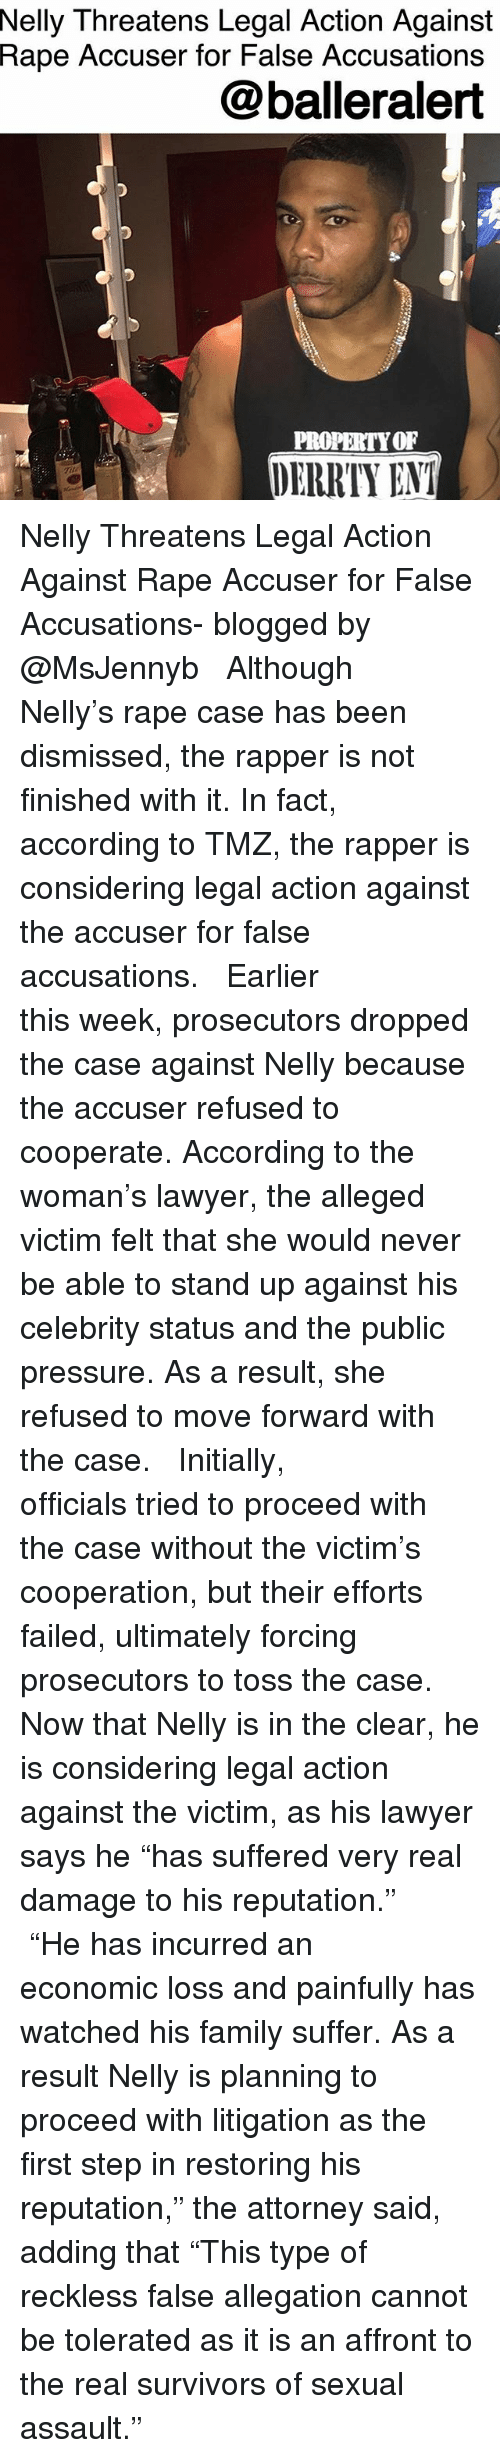 """Family, Lawyer, and Memes: Nelly  Threatens Legal Action Against  Rape Accuser for False Accusations  @balleralert  PROPERTYOF  DERRTY ENT Nelly Threatens Legal Action Against Rape Accuser for False Accusations- blogged by @MsJennyb ⠀⠀⠀⠀⠀⠀⠀ ⠀⠀⠀⠀⠀⠀⠀ Although Nelly's rape case has been dismissed, the rapper is not finished with it. In fact, according to TMZ, the rapper is considering legal action against the accuser for false accusations. ⠀⠀⠀⠀⠀⠀⠀ ⠀⠀⠀⠀⠀⠀⠀ Earlier this week, prosecutors dropped the case against Nelly because the accuser refused to cooperate. According to the woman's lawyer, the alleged victim felt that she would never be able to stand up against his celebrity status and the public pressure. As a result, she refused to move forward with the case. ⠀⠀⠀⠀⠀⠀⠀ ⠀⠀⠀⠀⠀⠀⠀ Initially, officials tried to proceed with the case without the victim's cooperation, but their efforts failed, ultimately forcing prosecutors to toss the case. Now that Nelly is in the clear, he is considering legal action against the victim, as his lawyer says he """"has suffered very real damage to his reputation."""" ⠀⠀⠀⠀⠀⠀⠀ ⠀⠀⠀⠀⠀⠀⠀ """"He has incurred an economic loss and painfully has watched his family suffer. As a result Nelly is planning to proceed with litigation as the first step in restoring his reputation,"""" the attorney said, adding that """"This type of reckless false allegation cannot be tolerated as it is an affront to the real survivors of sexual assault."""""""